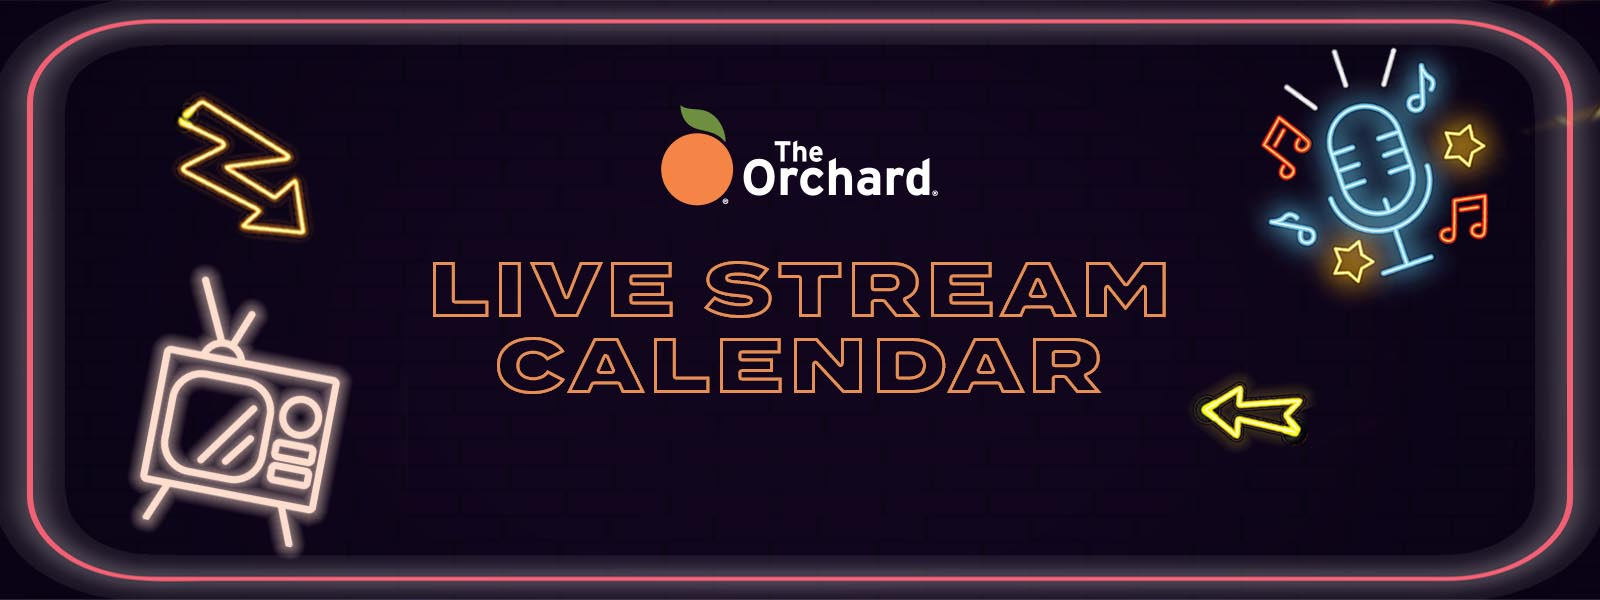 The Orchard: Live Stream Calendar (Updating)